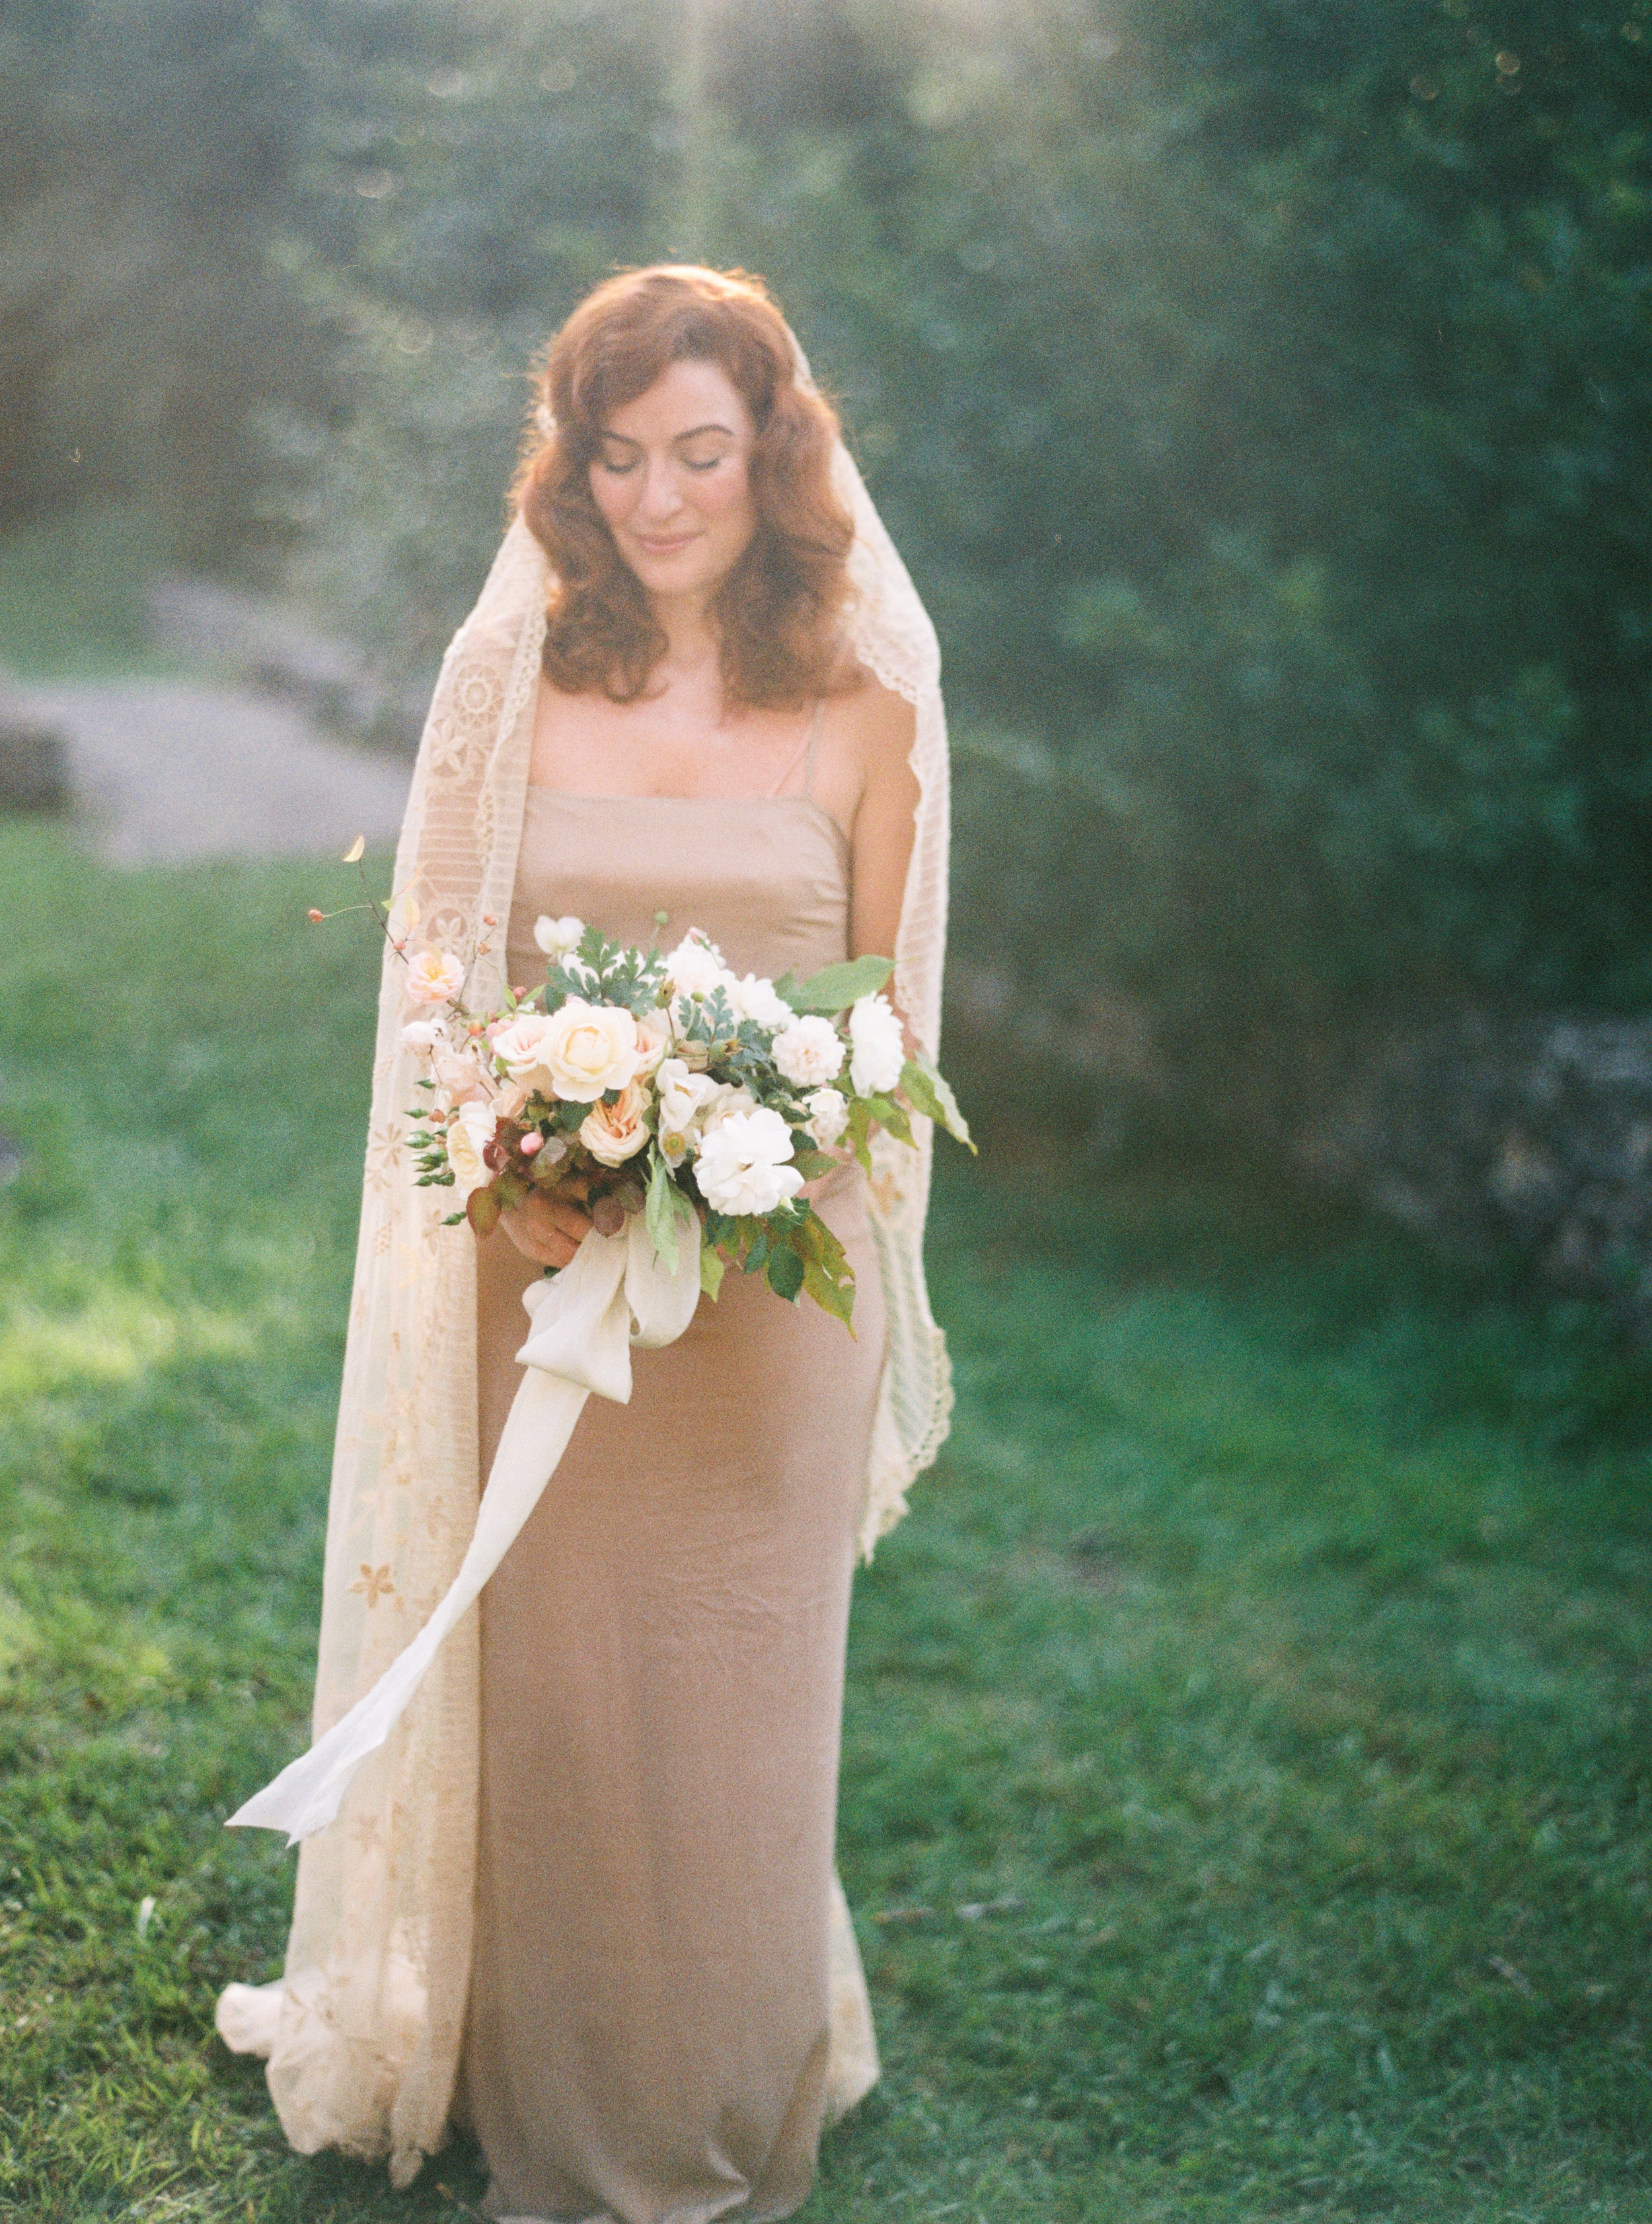 Photo by Tamara Gigola. European Workshop by Ginny Au. Inspirational bridal shoot. Flowers by Sara Winward, dress by Gossamer Vintage. France. Dordogne.